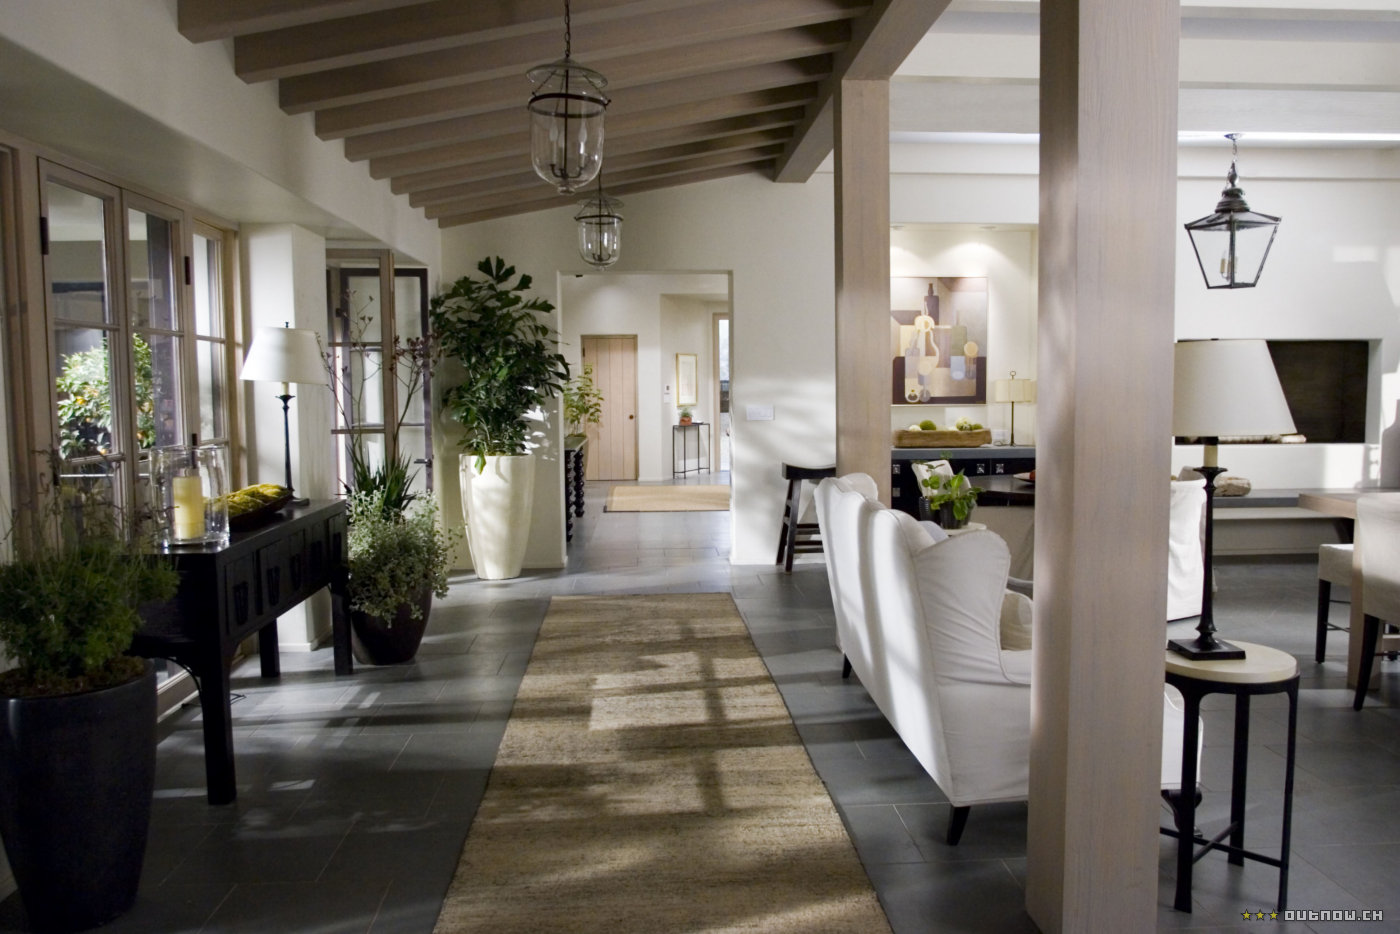 Nancy Meyers 9 Ways To Make Your Home Feel Straight Out Of A Nancy Meyers Movie